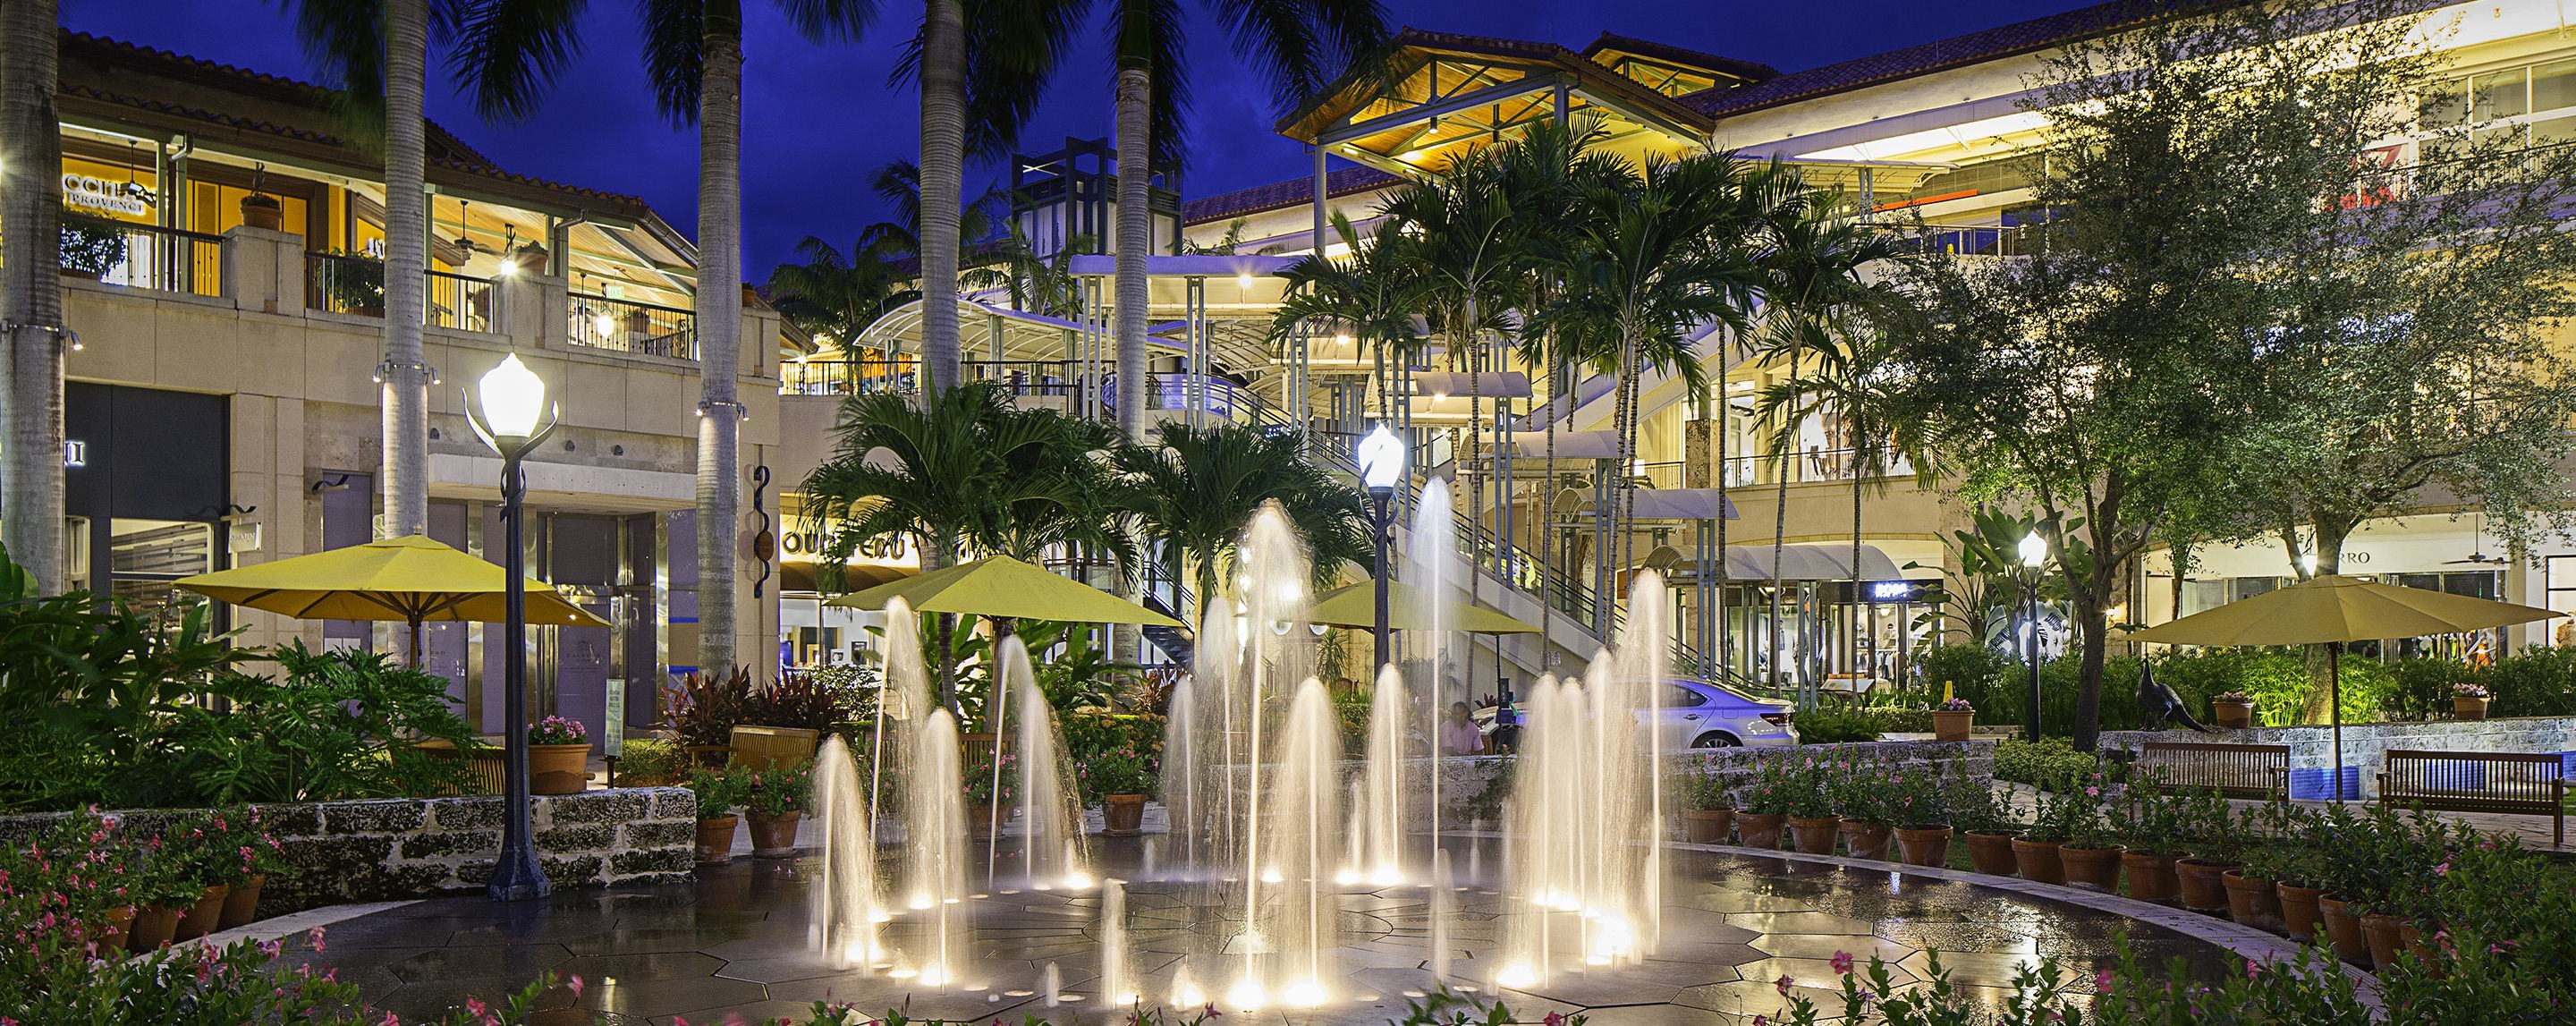 A fountain spouts water in the courtyard of Shops at Merrick Park at night.